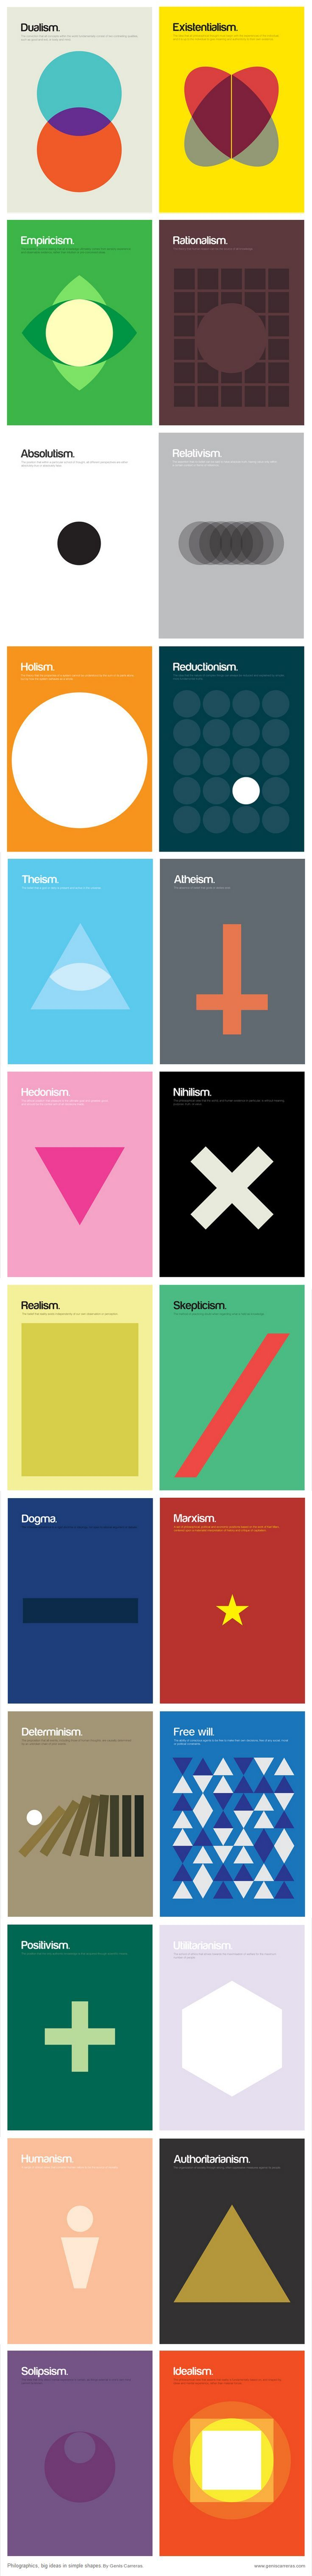 """""""Philographics"""": Big ideas illustrated in simple shapes. By Genís Carreras.:"""